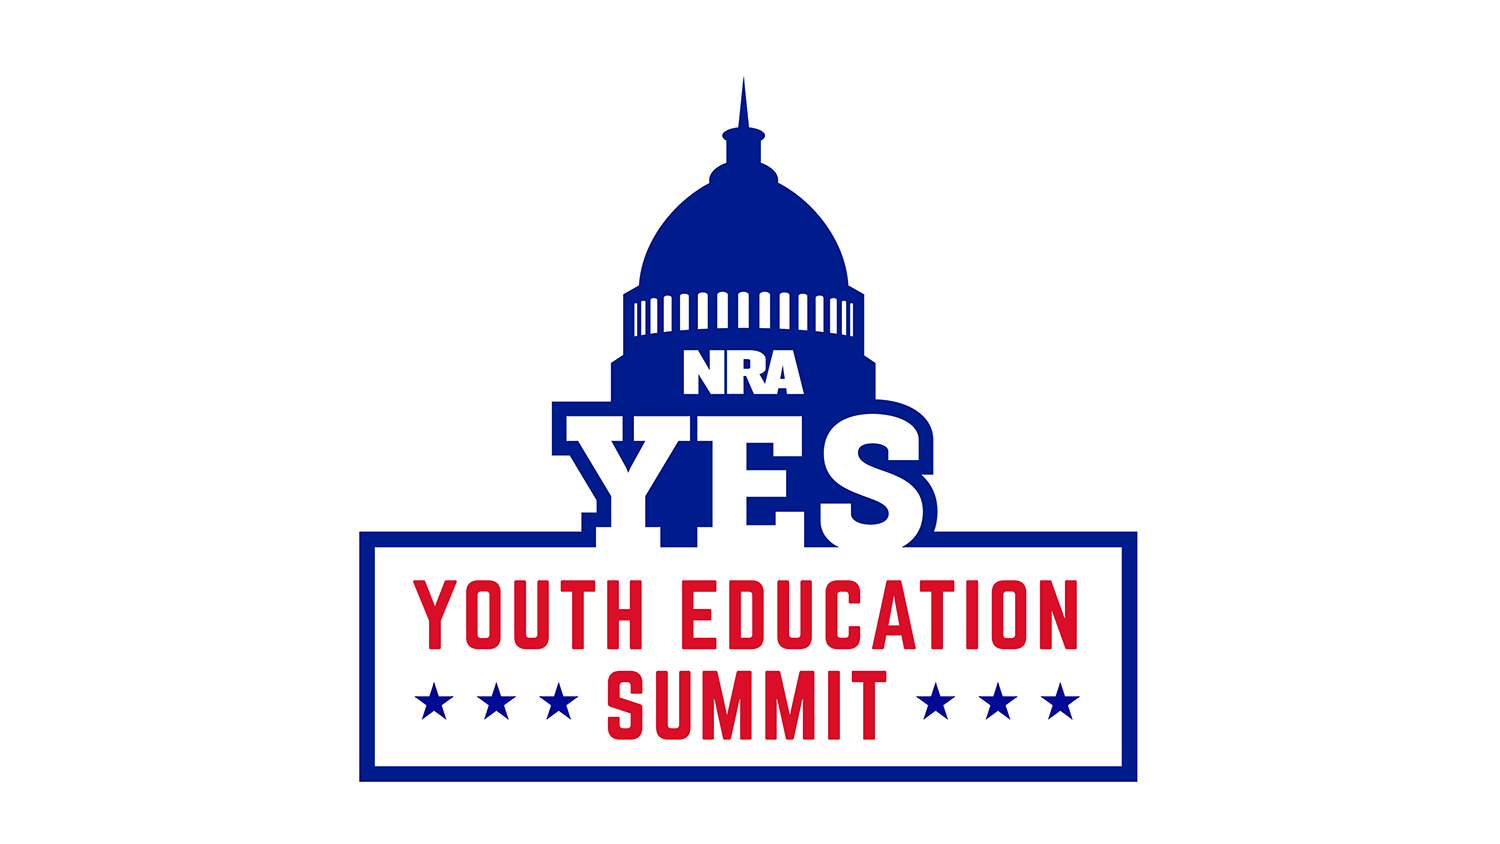 TheDailyTimes.com: Say YES to NRA youth leadership training